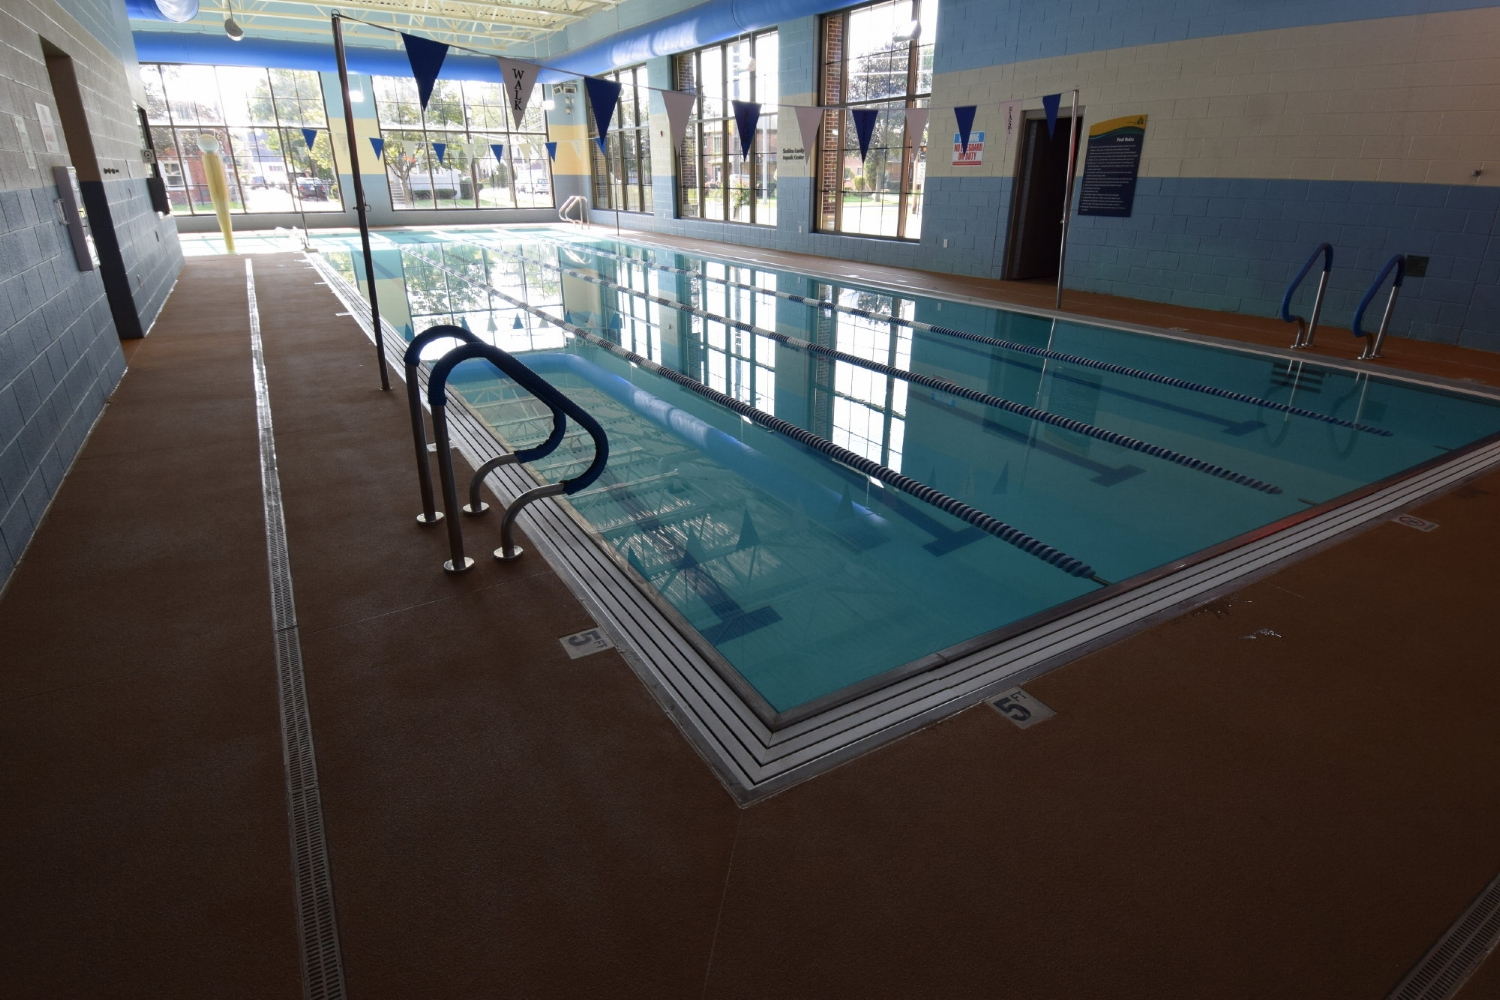 Commercial, Indoor Concrete Pool Deck After Resurfacing With Integrally-Colored, Spray-Texture, Decorative Cement Overlay